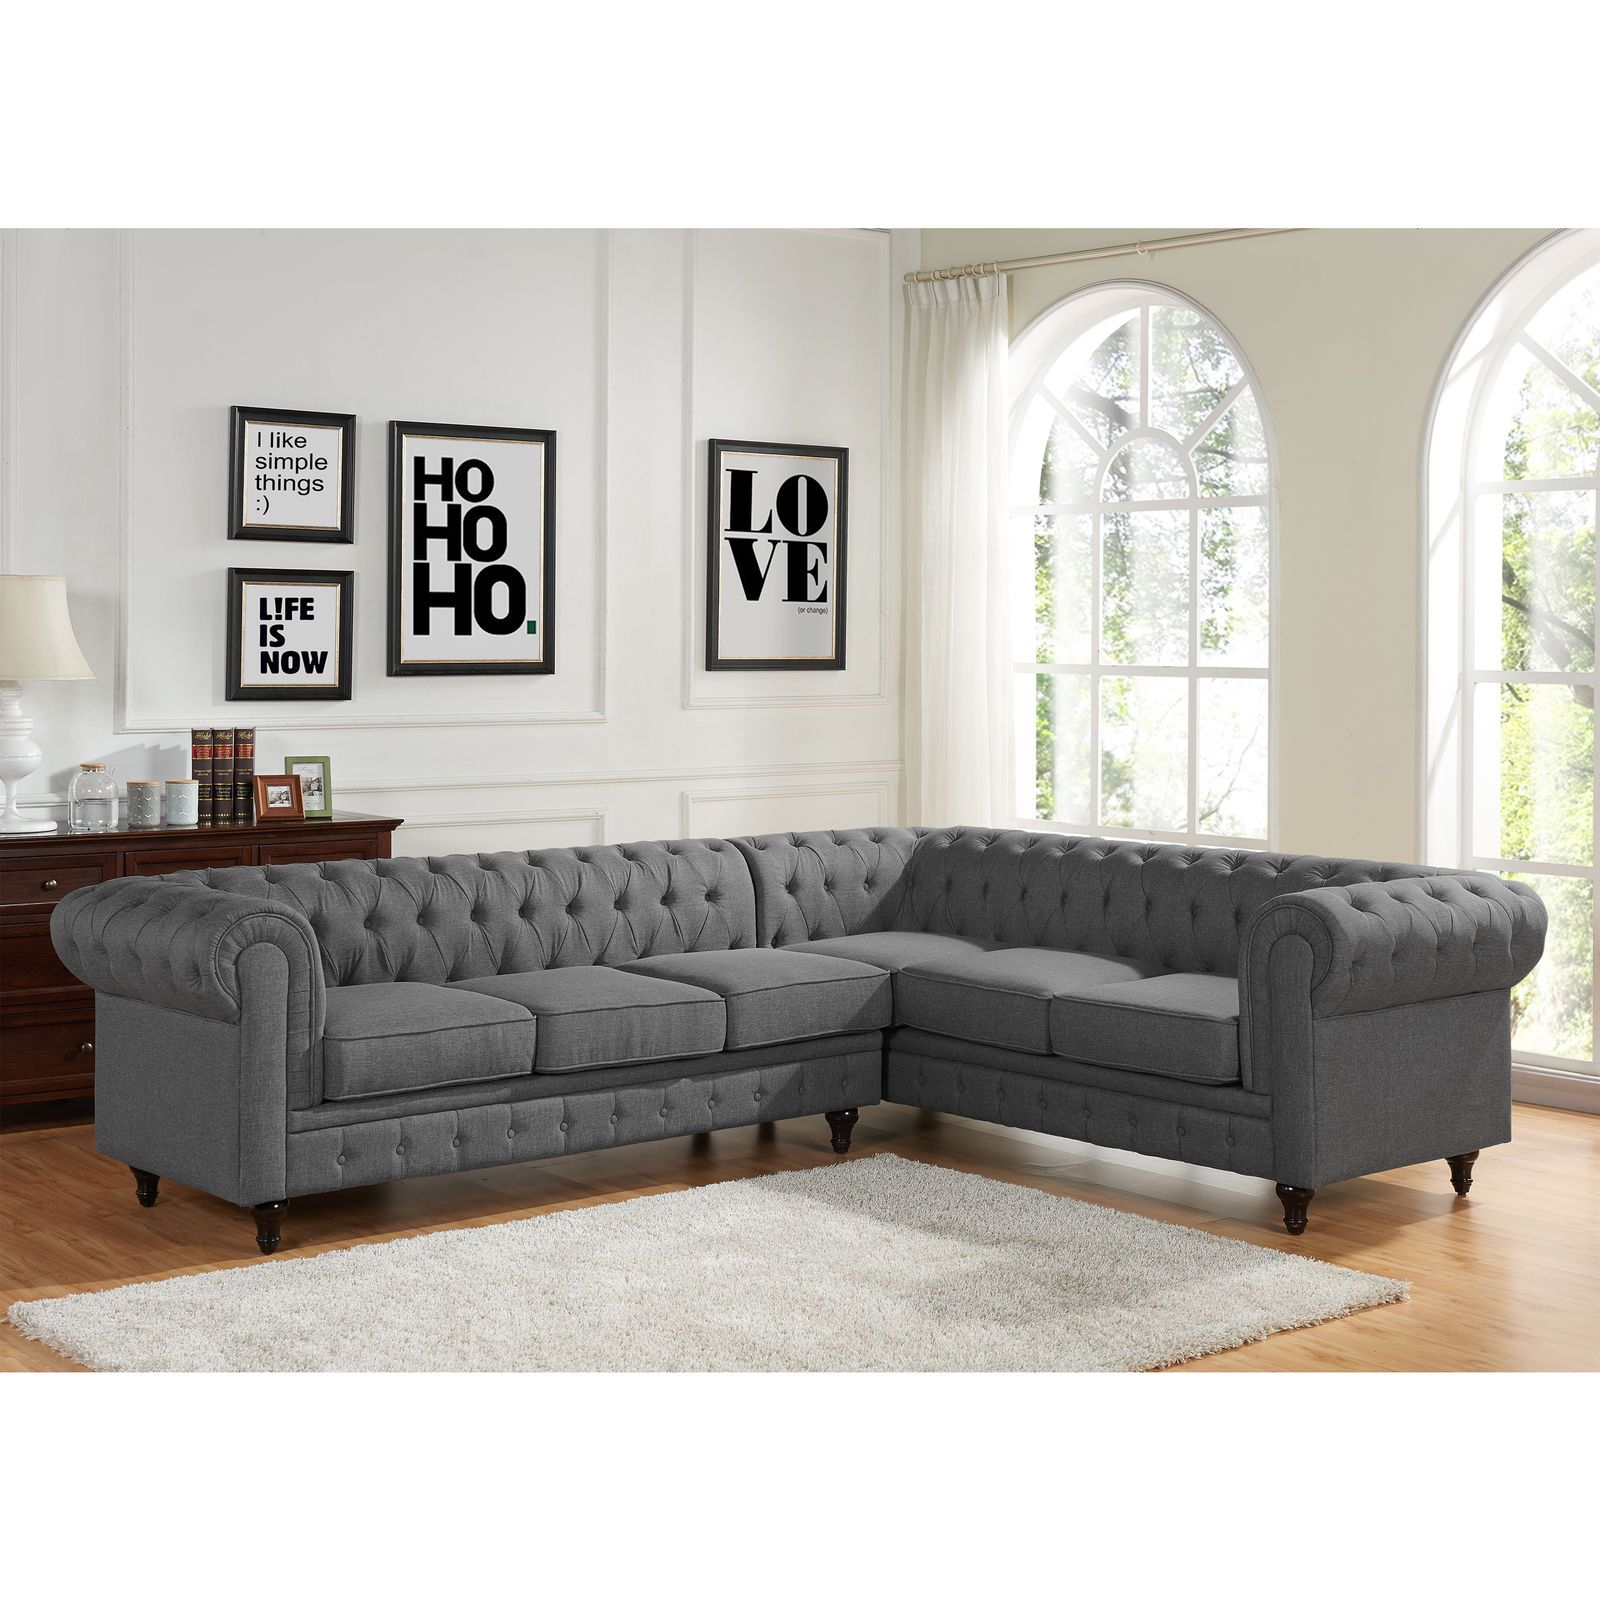 1493 99 Sophia Modern Style Tufted Rolled Arm Left Facing Chaise Sectional Sofa Sophia M Sectional Sofa Grey Sectional Sofa Sectional Sofa With Chaise